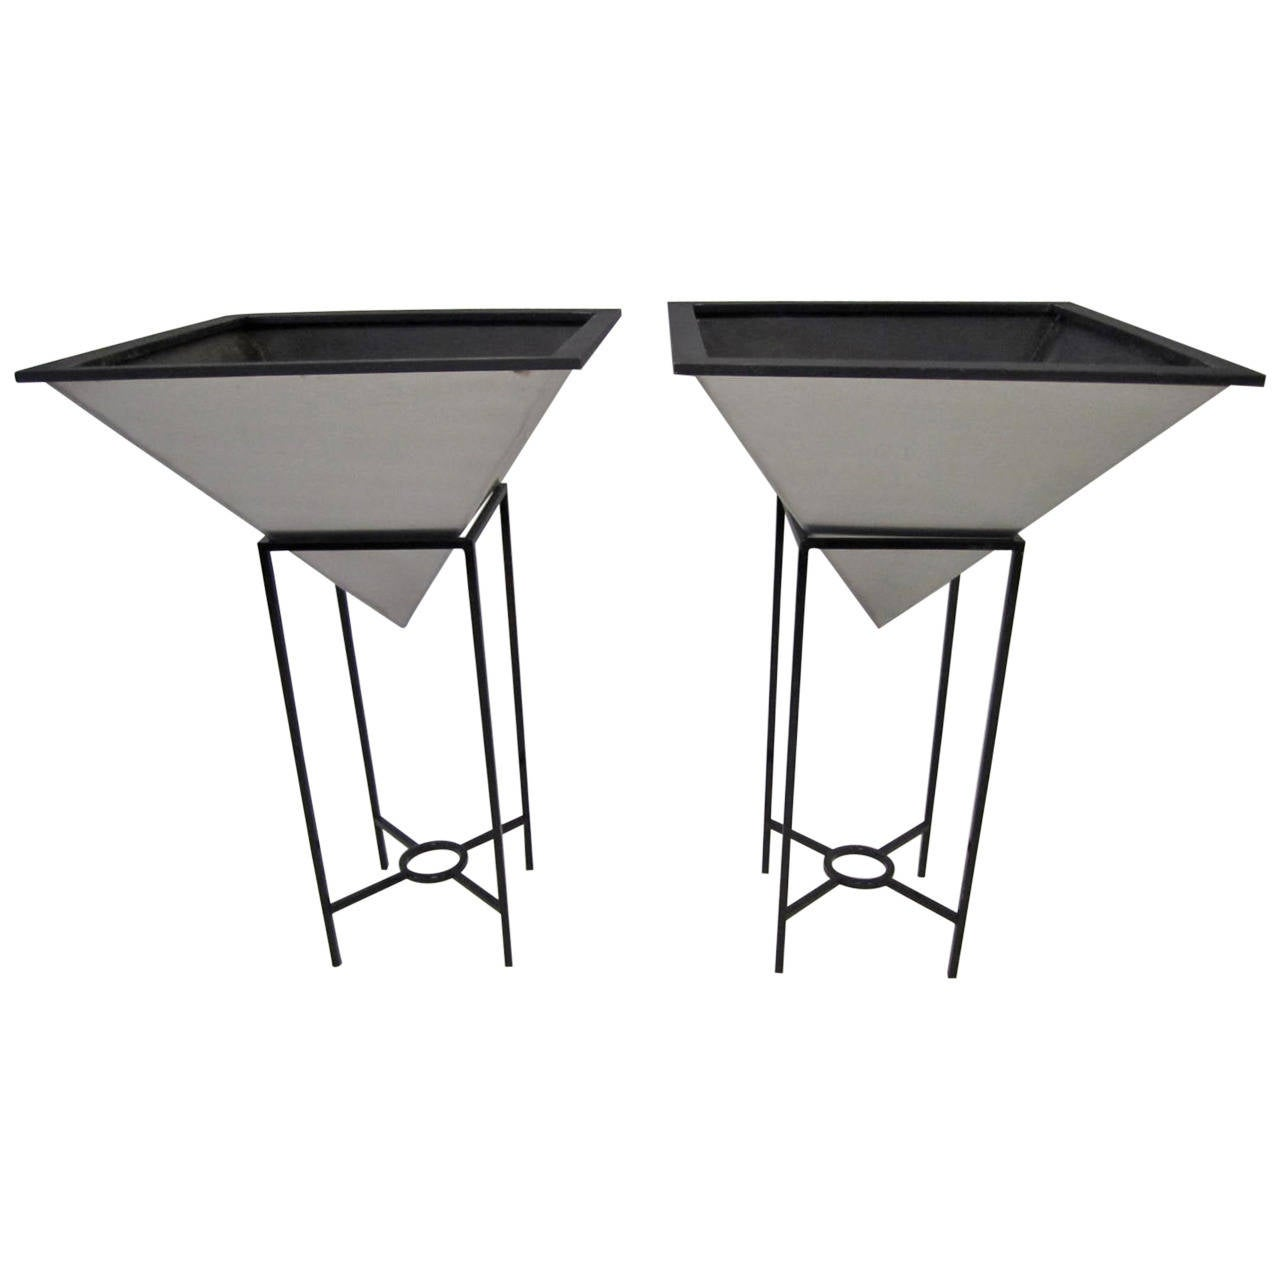 Oversized Inverted Pyramid Planters on Iron Stands Mid-Century Modern